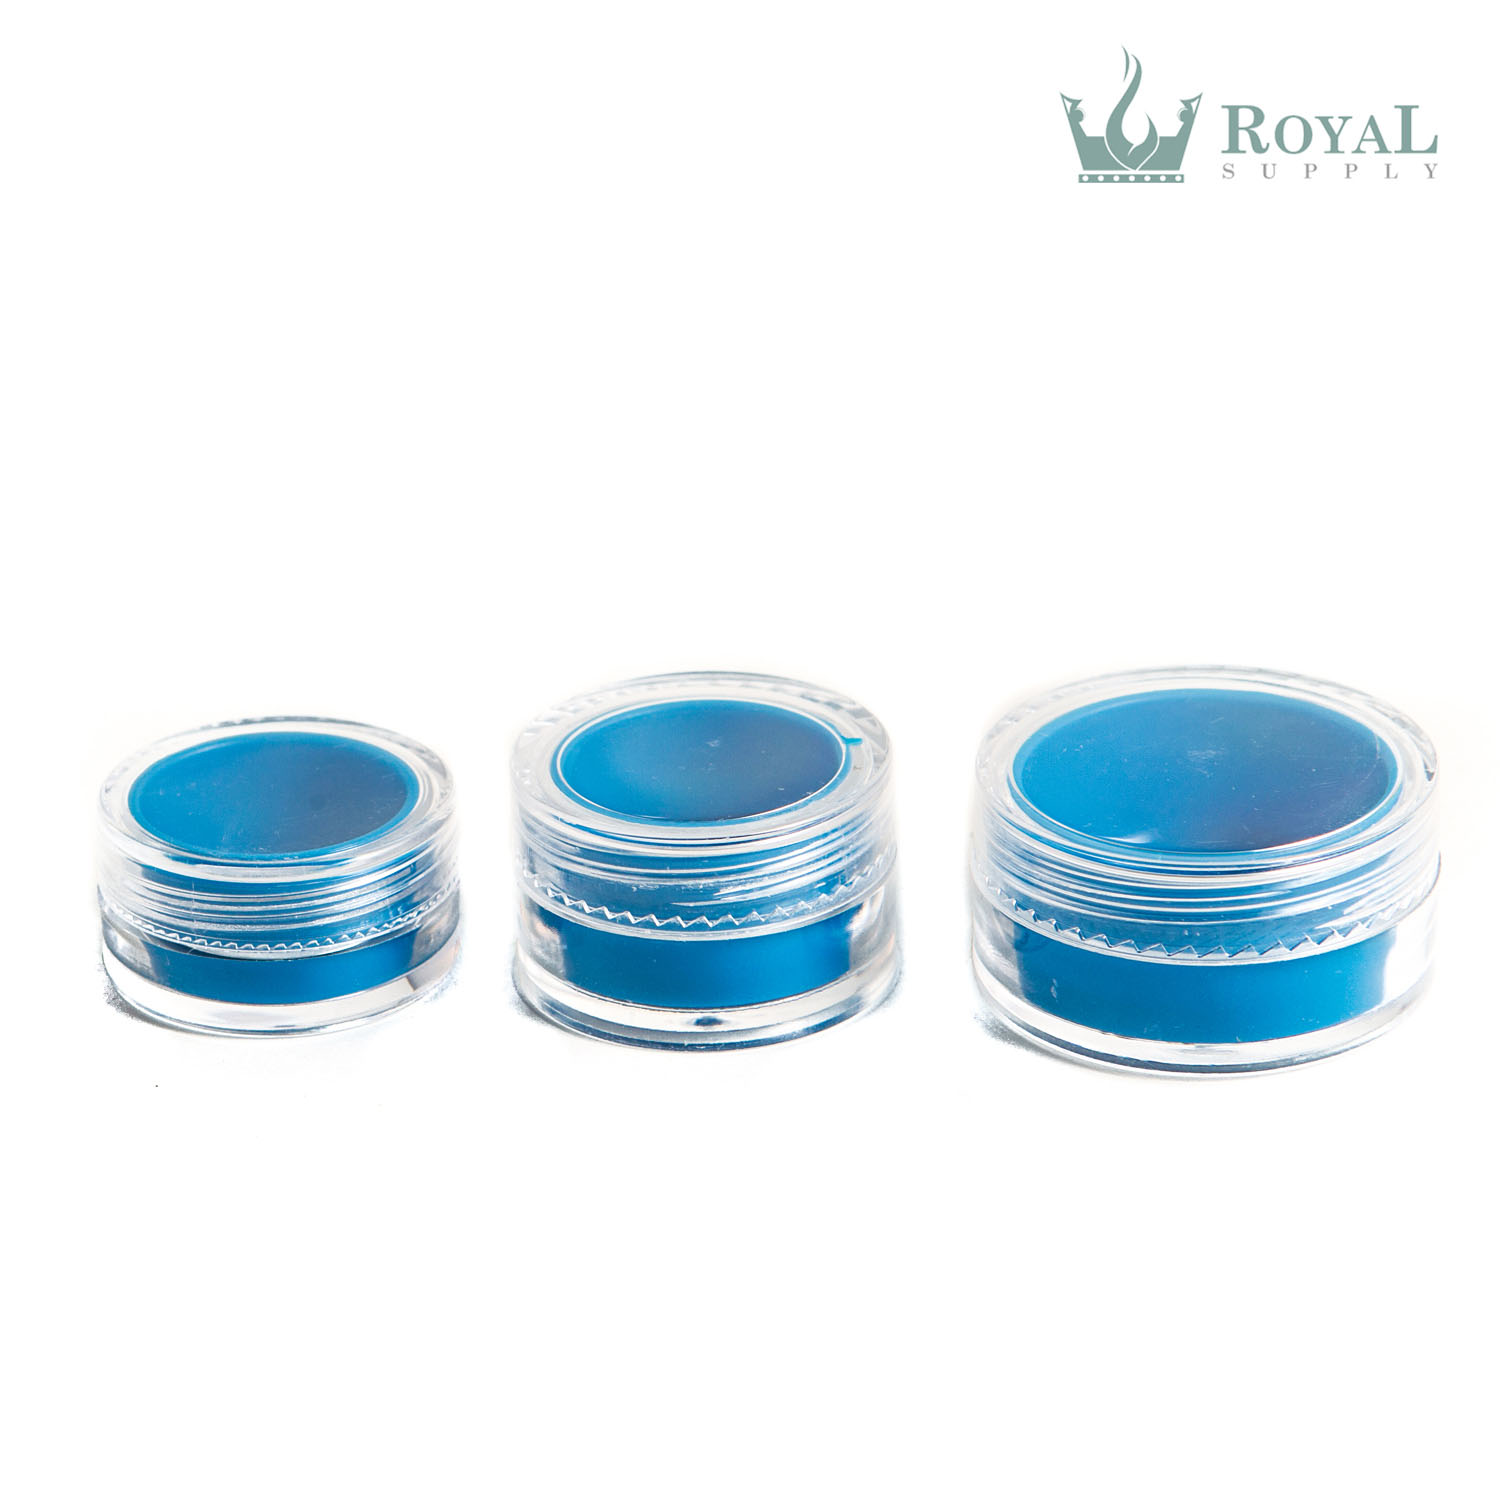 7 ml Plastic Concentrate Container with Silicone Insert